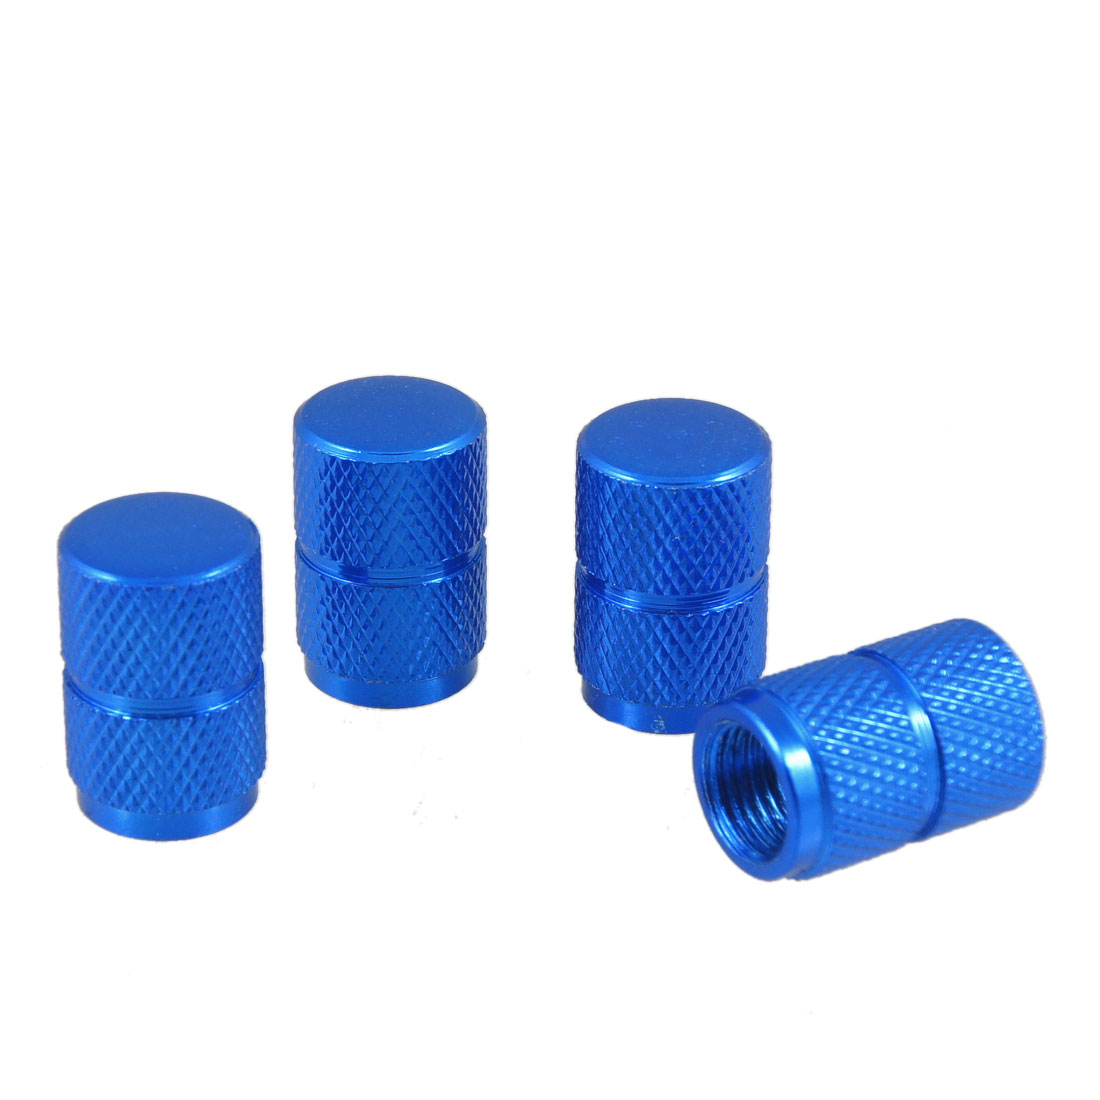 Auto Royalblue Knurling Pattern Tyre Tire Stem Covers Caps x 4